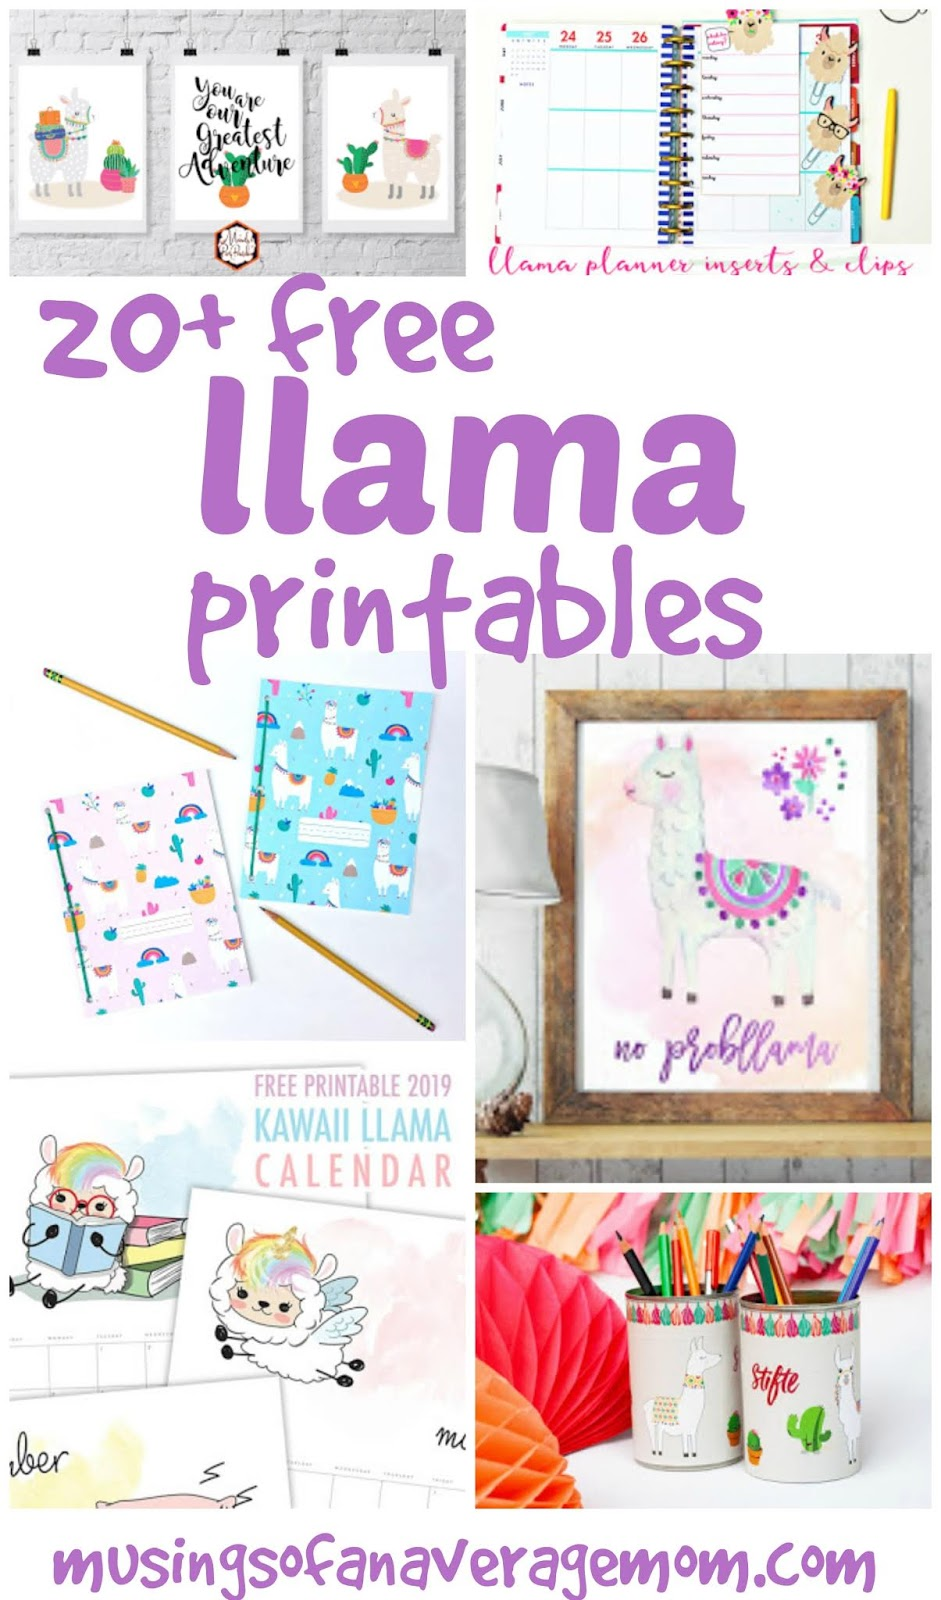 image regarding Llama Printable called Musings of an Ordinary Mother: llama printables